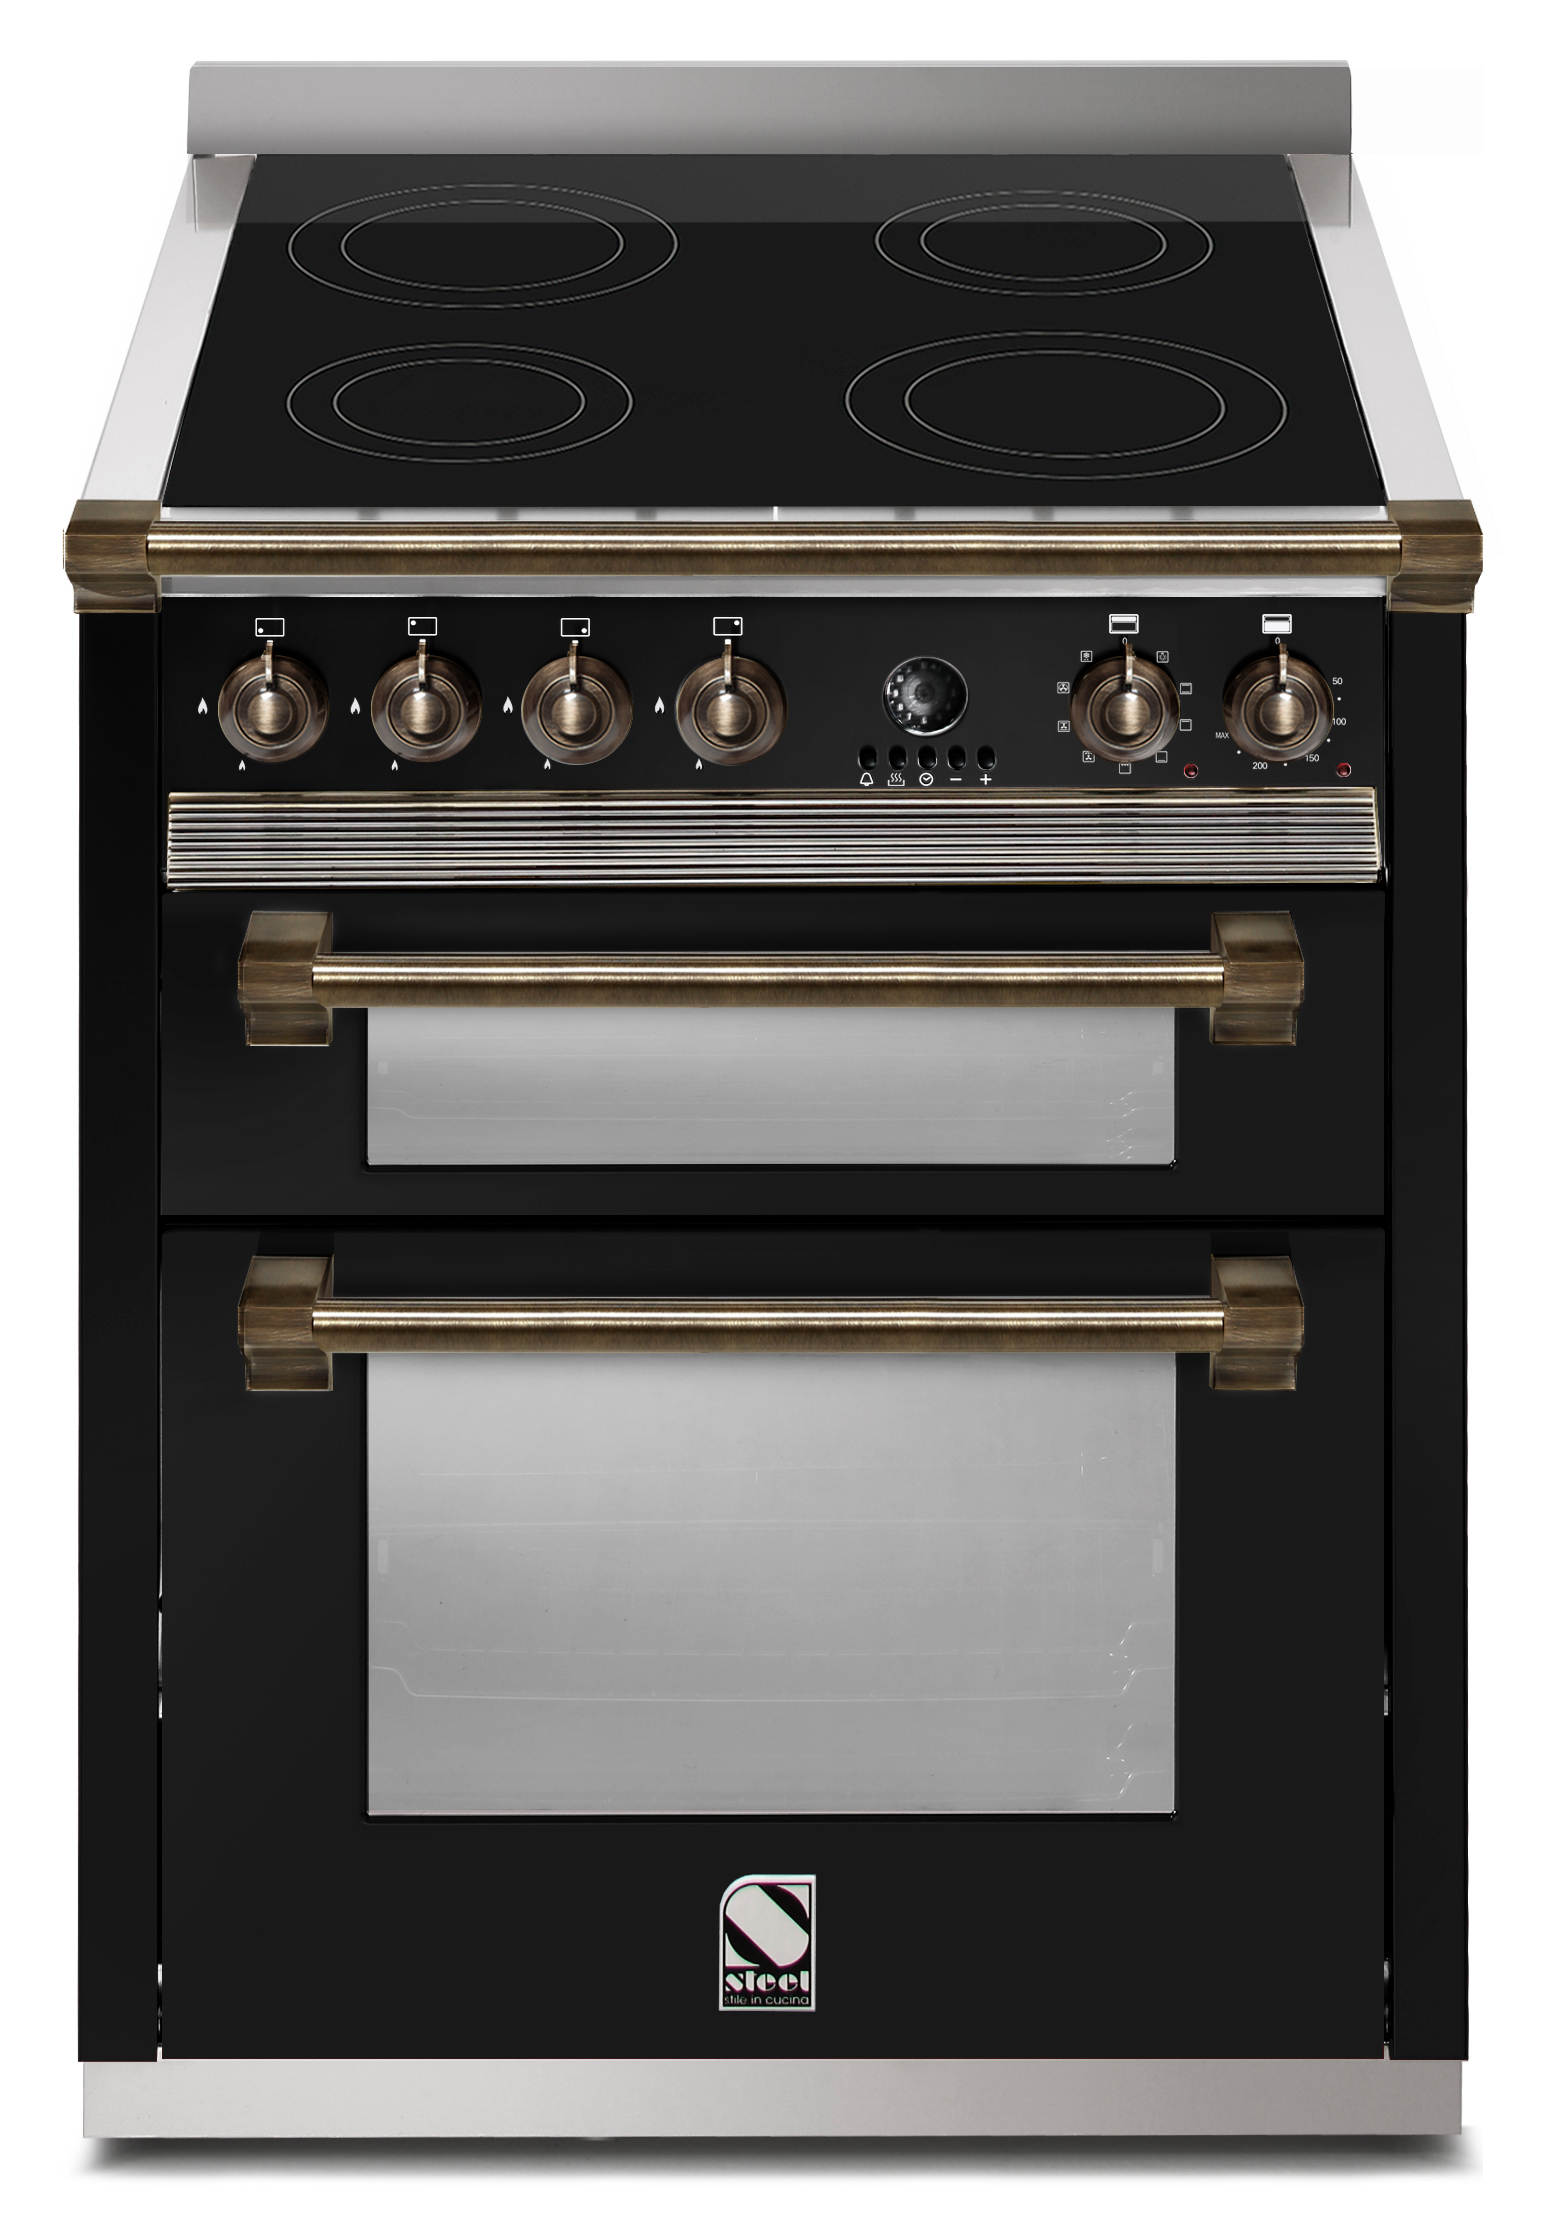 steel ascot multifunction 70 cm 2 ugnar induktion range cookers fr n. Black Bedroom Furniture Sets. Home Design Ideas